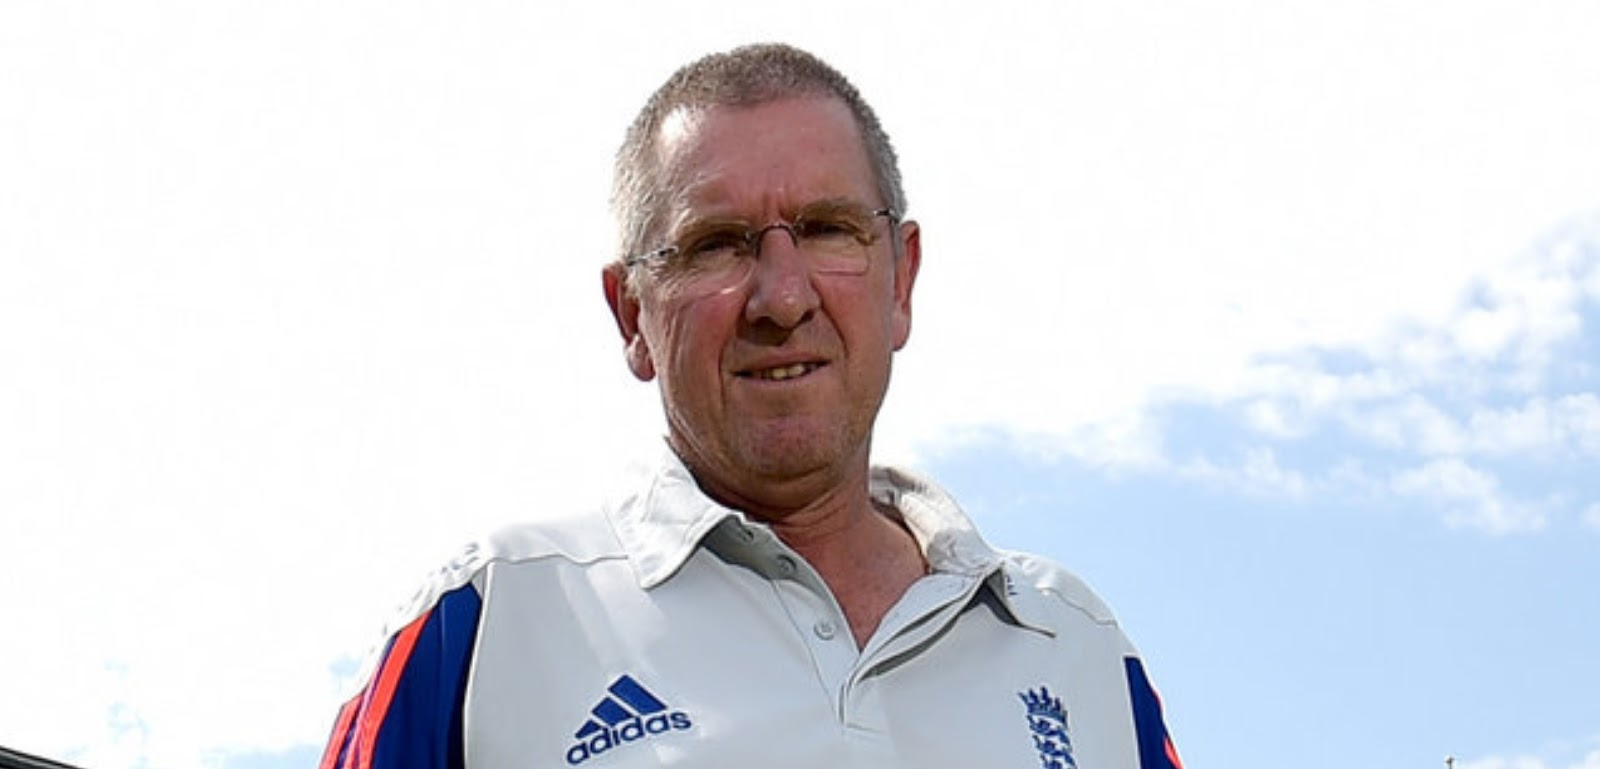 how much trevor bayliss England coach salary 2017